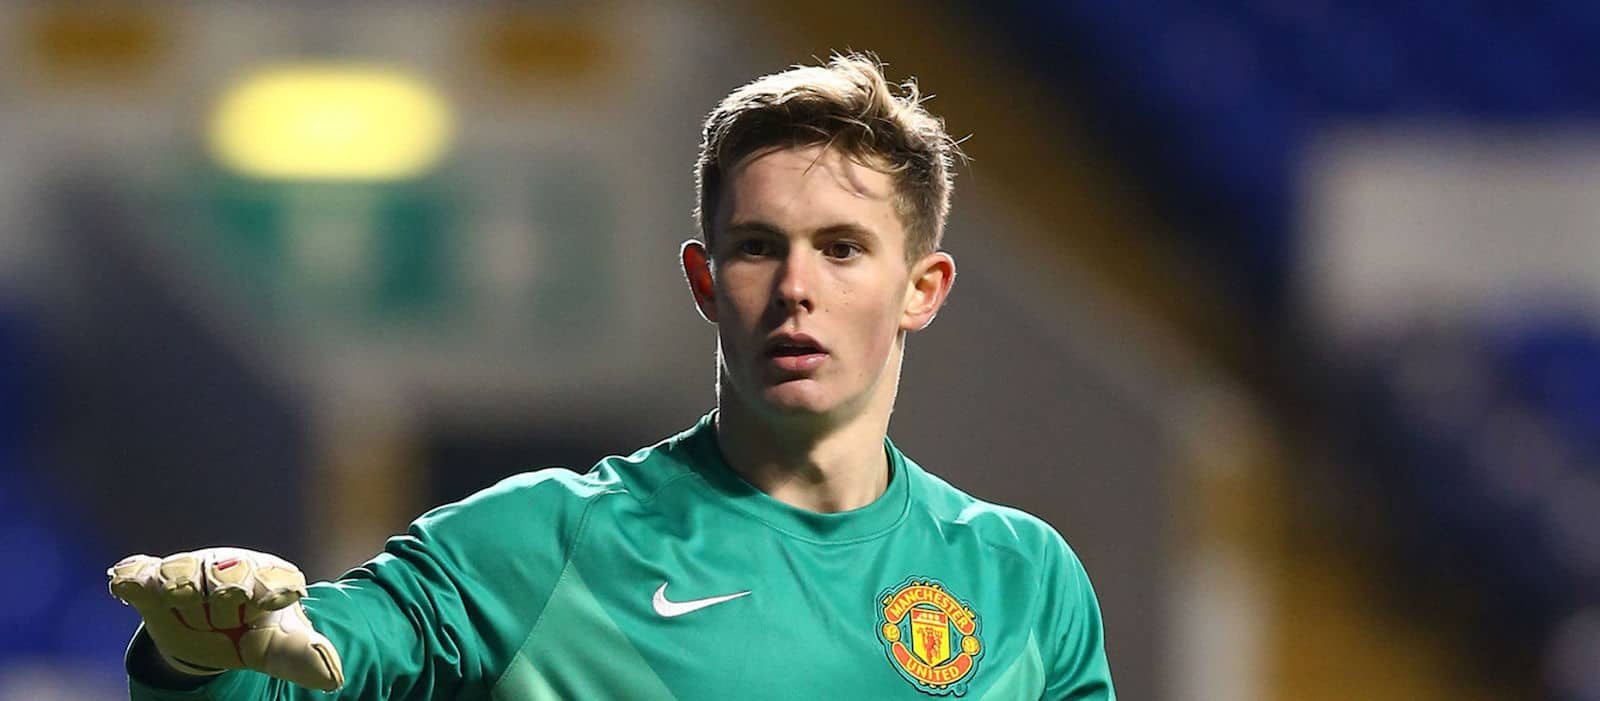 Manchester United fans react to Dean Henderson's new contract